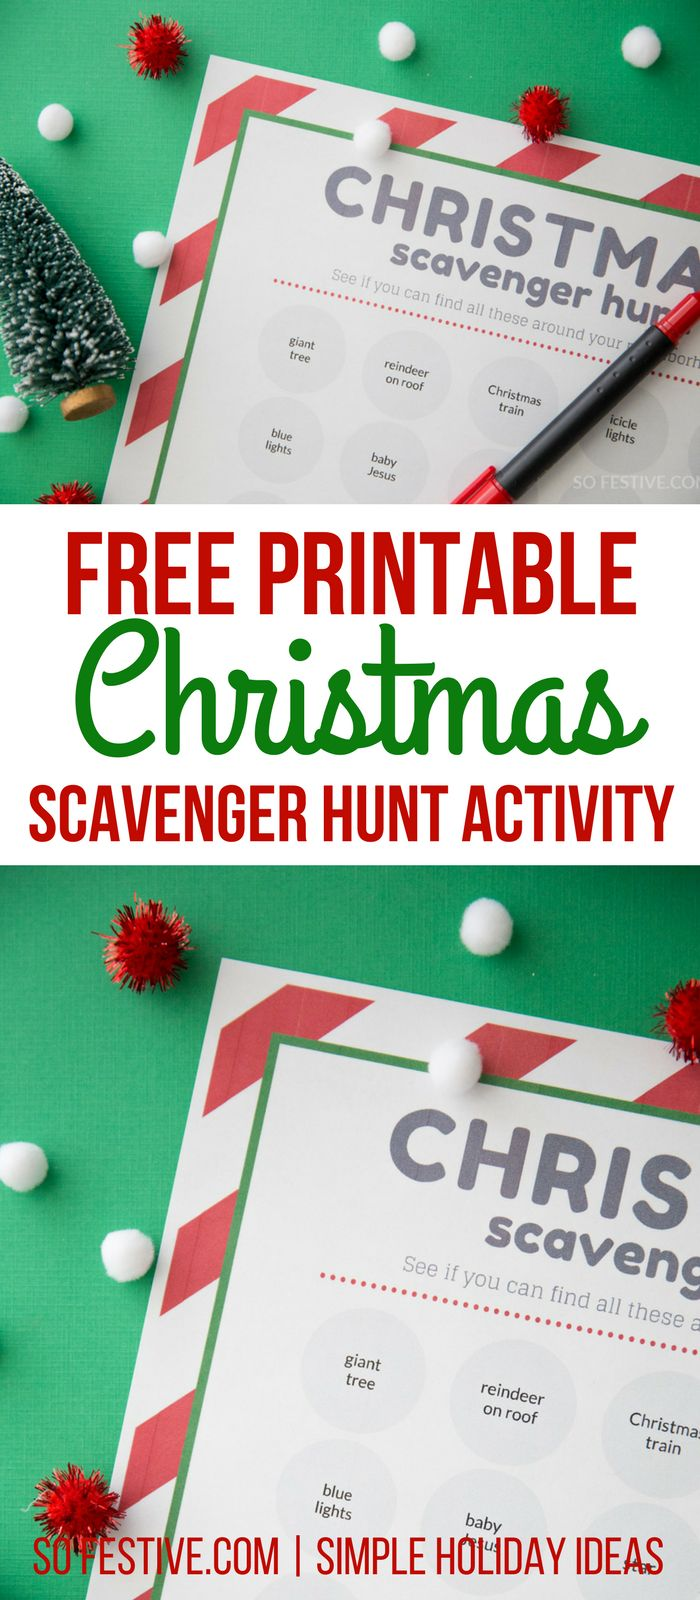 The kids will have fun with this free Christmas Scavenger Hunt Printable activity!